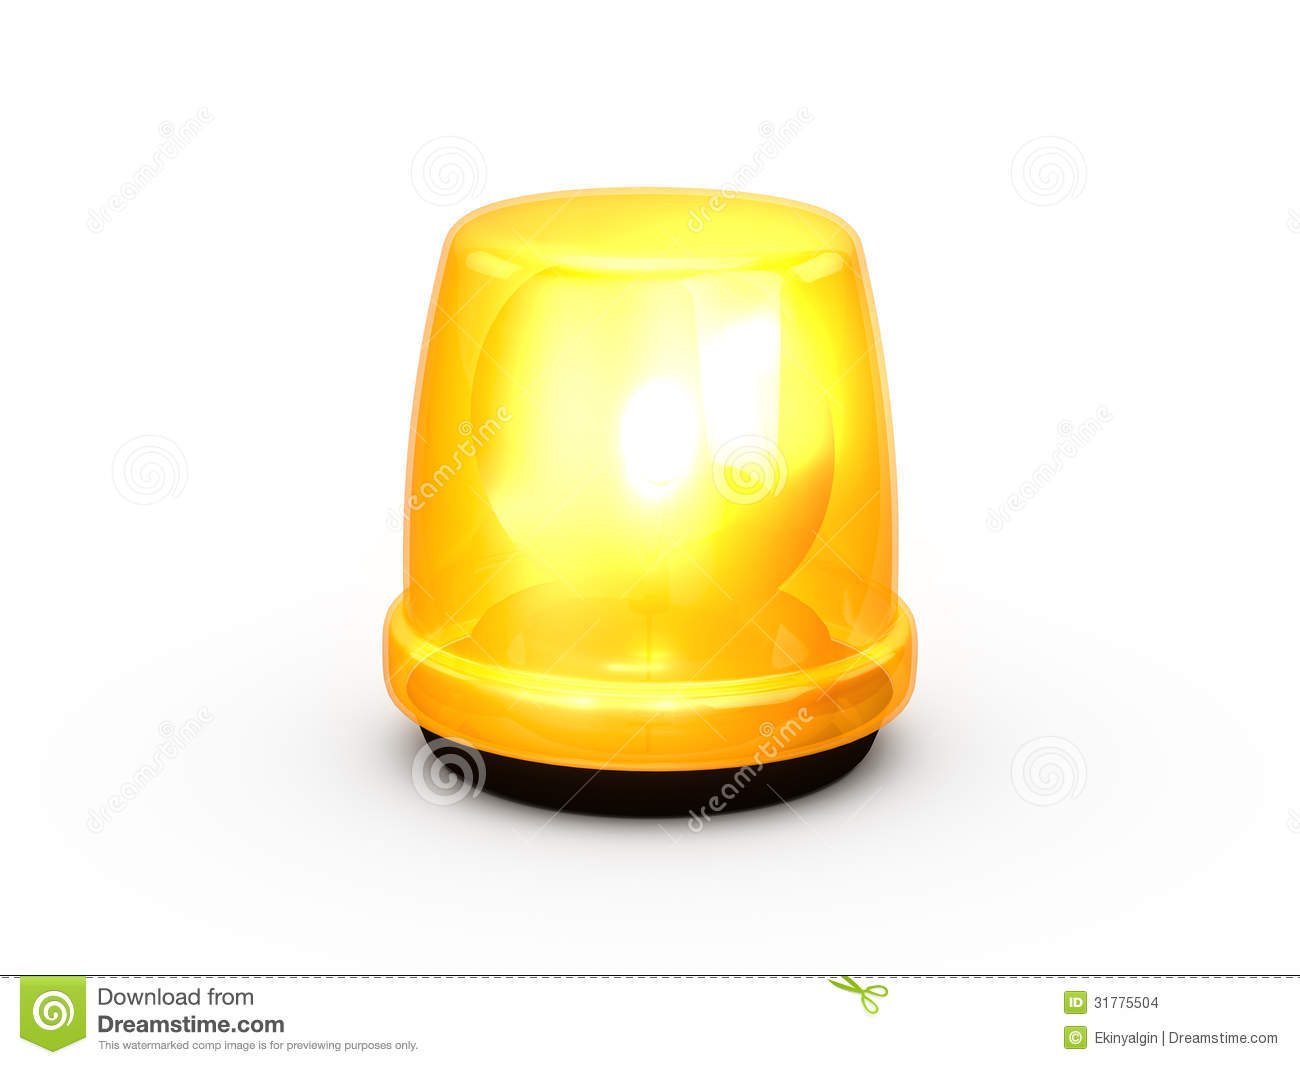 of rotating emergency top flashing format on or hd services and light a orange yiuqkre video support beacon vehicle